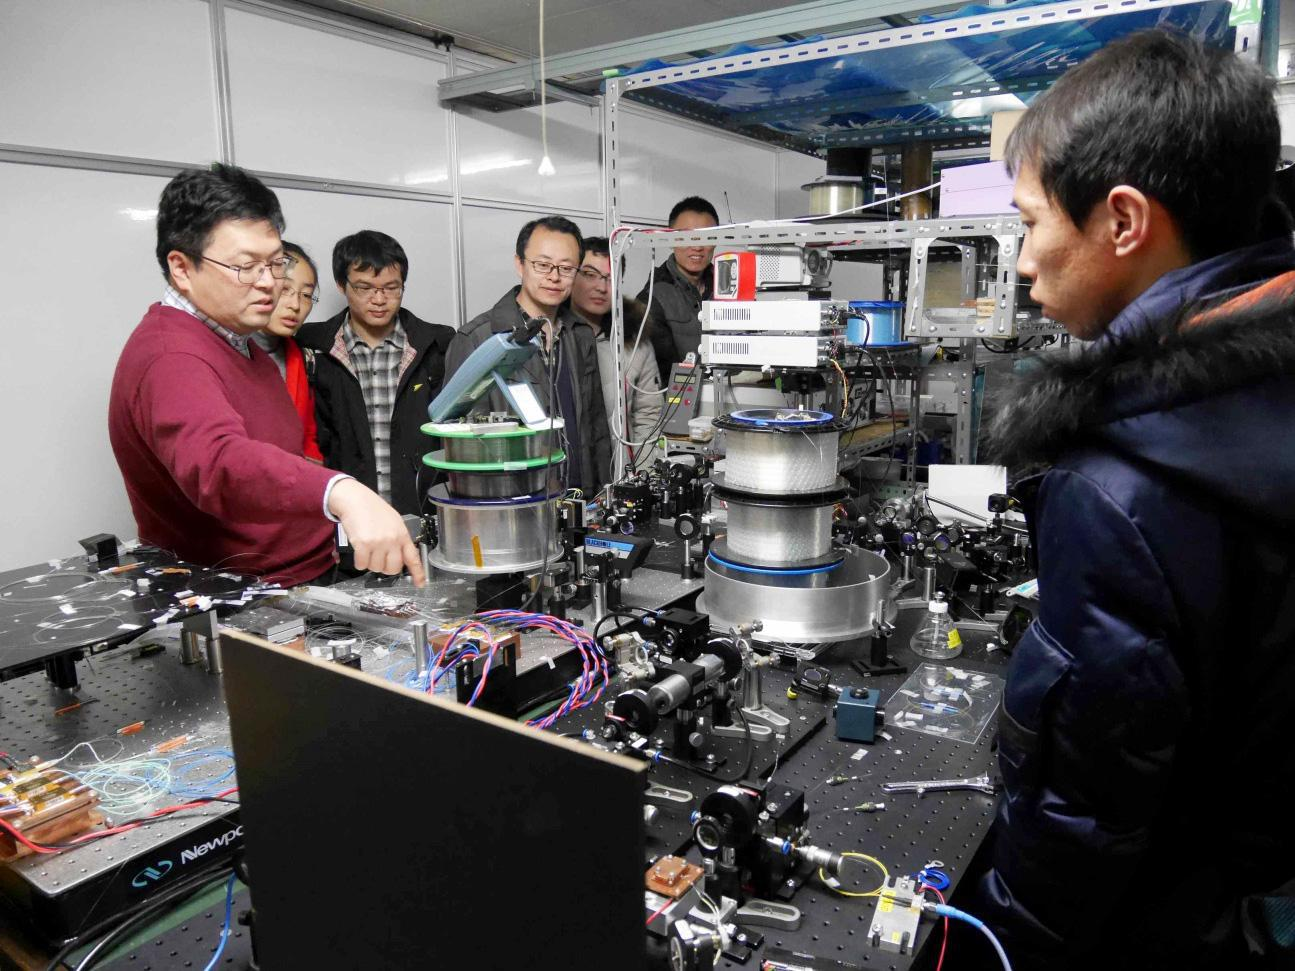 Harbin Engineering University students and faculty participate in international academic exchange on 'Advanced Photonics and Laser Technology' at UEC, Tokyo.